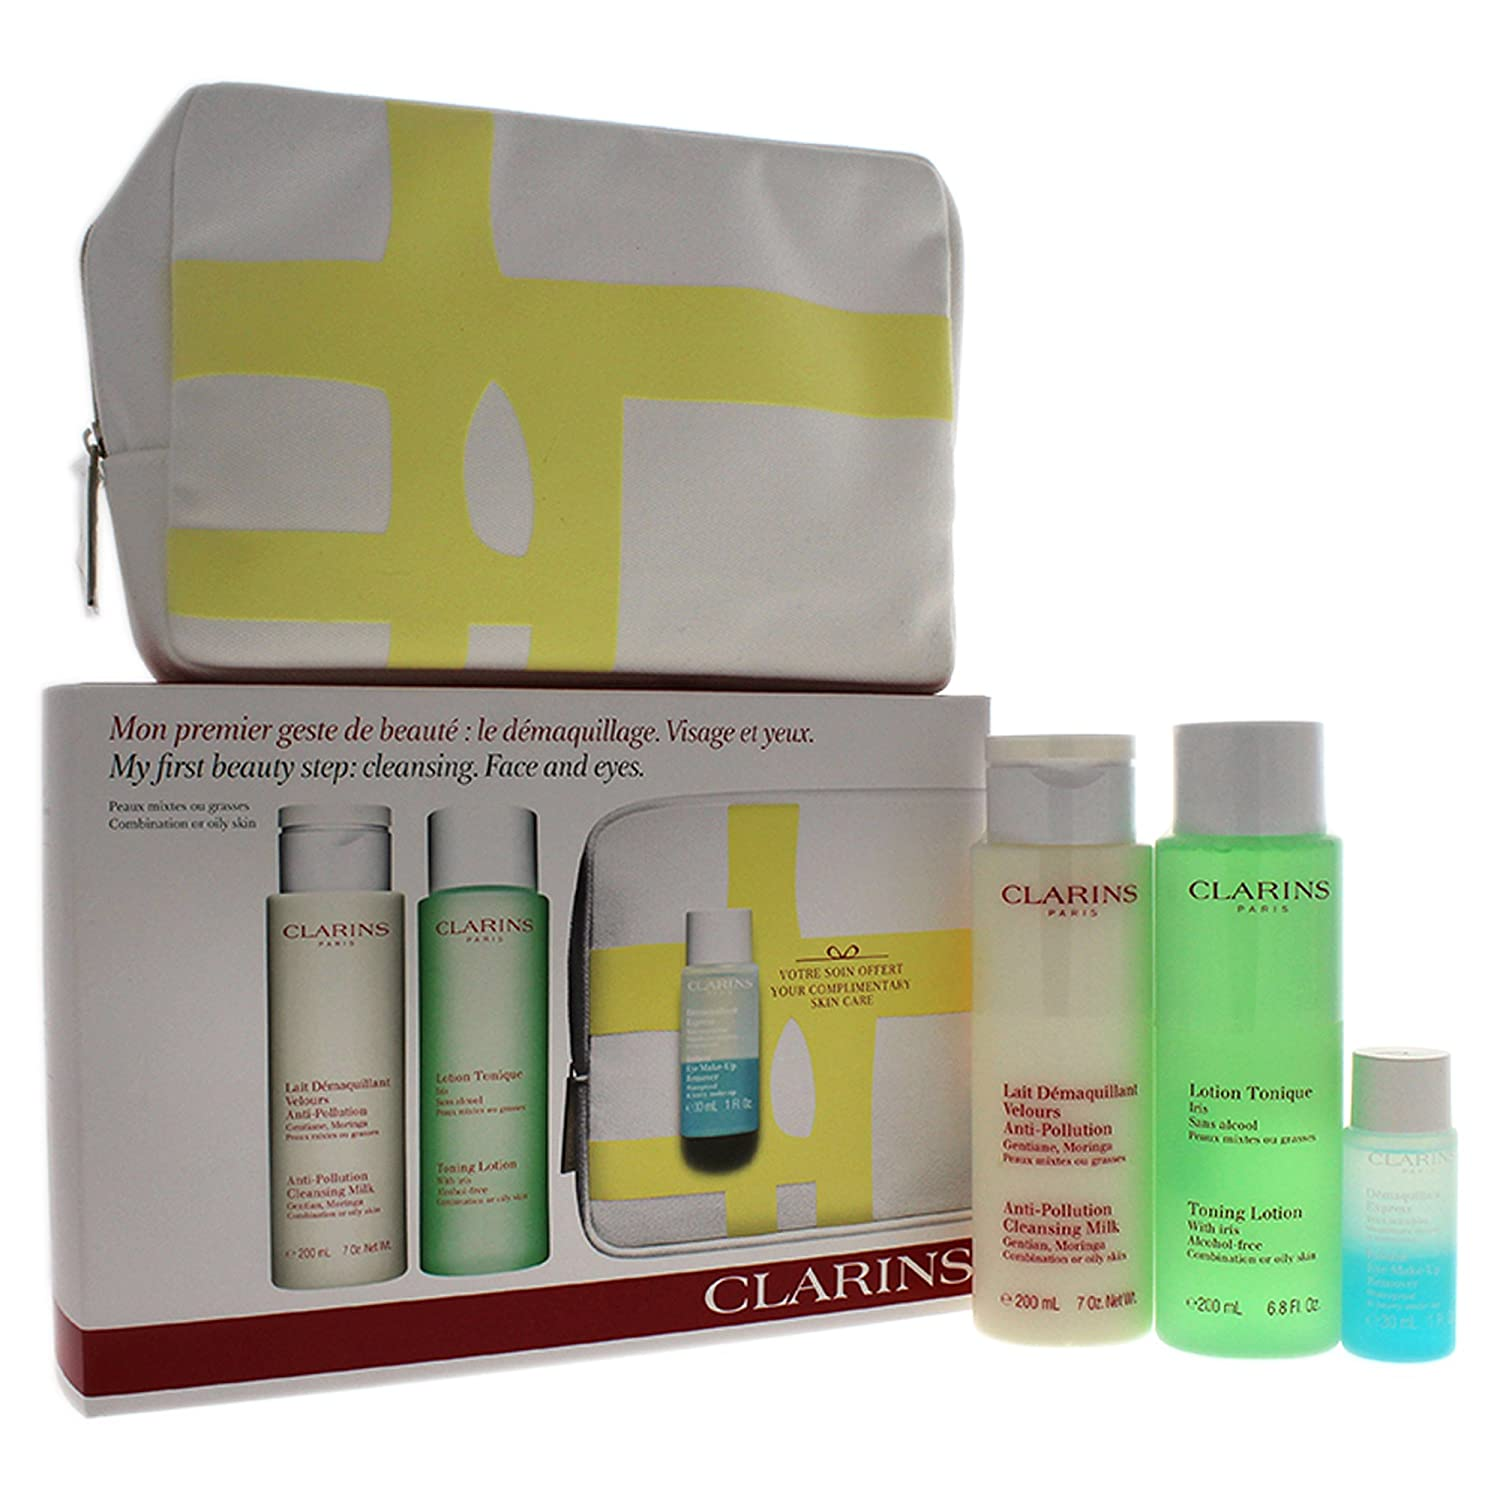 Clarins My First Beauty Step Cleansing Face and Eyes Gift Set, Combination or Oily Skin